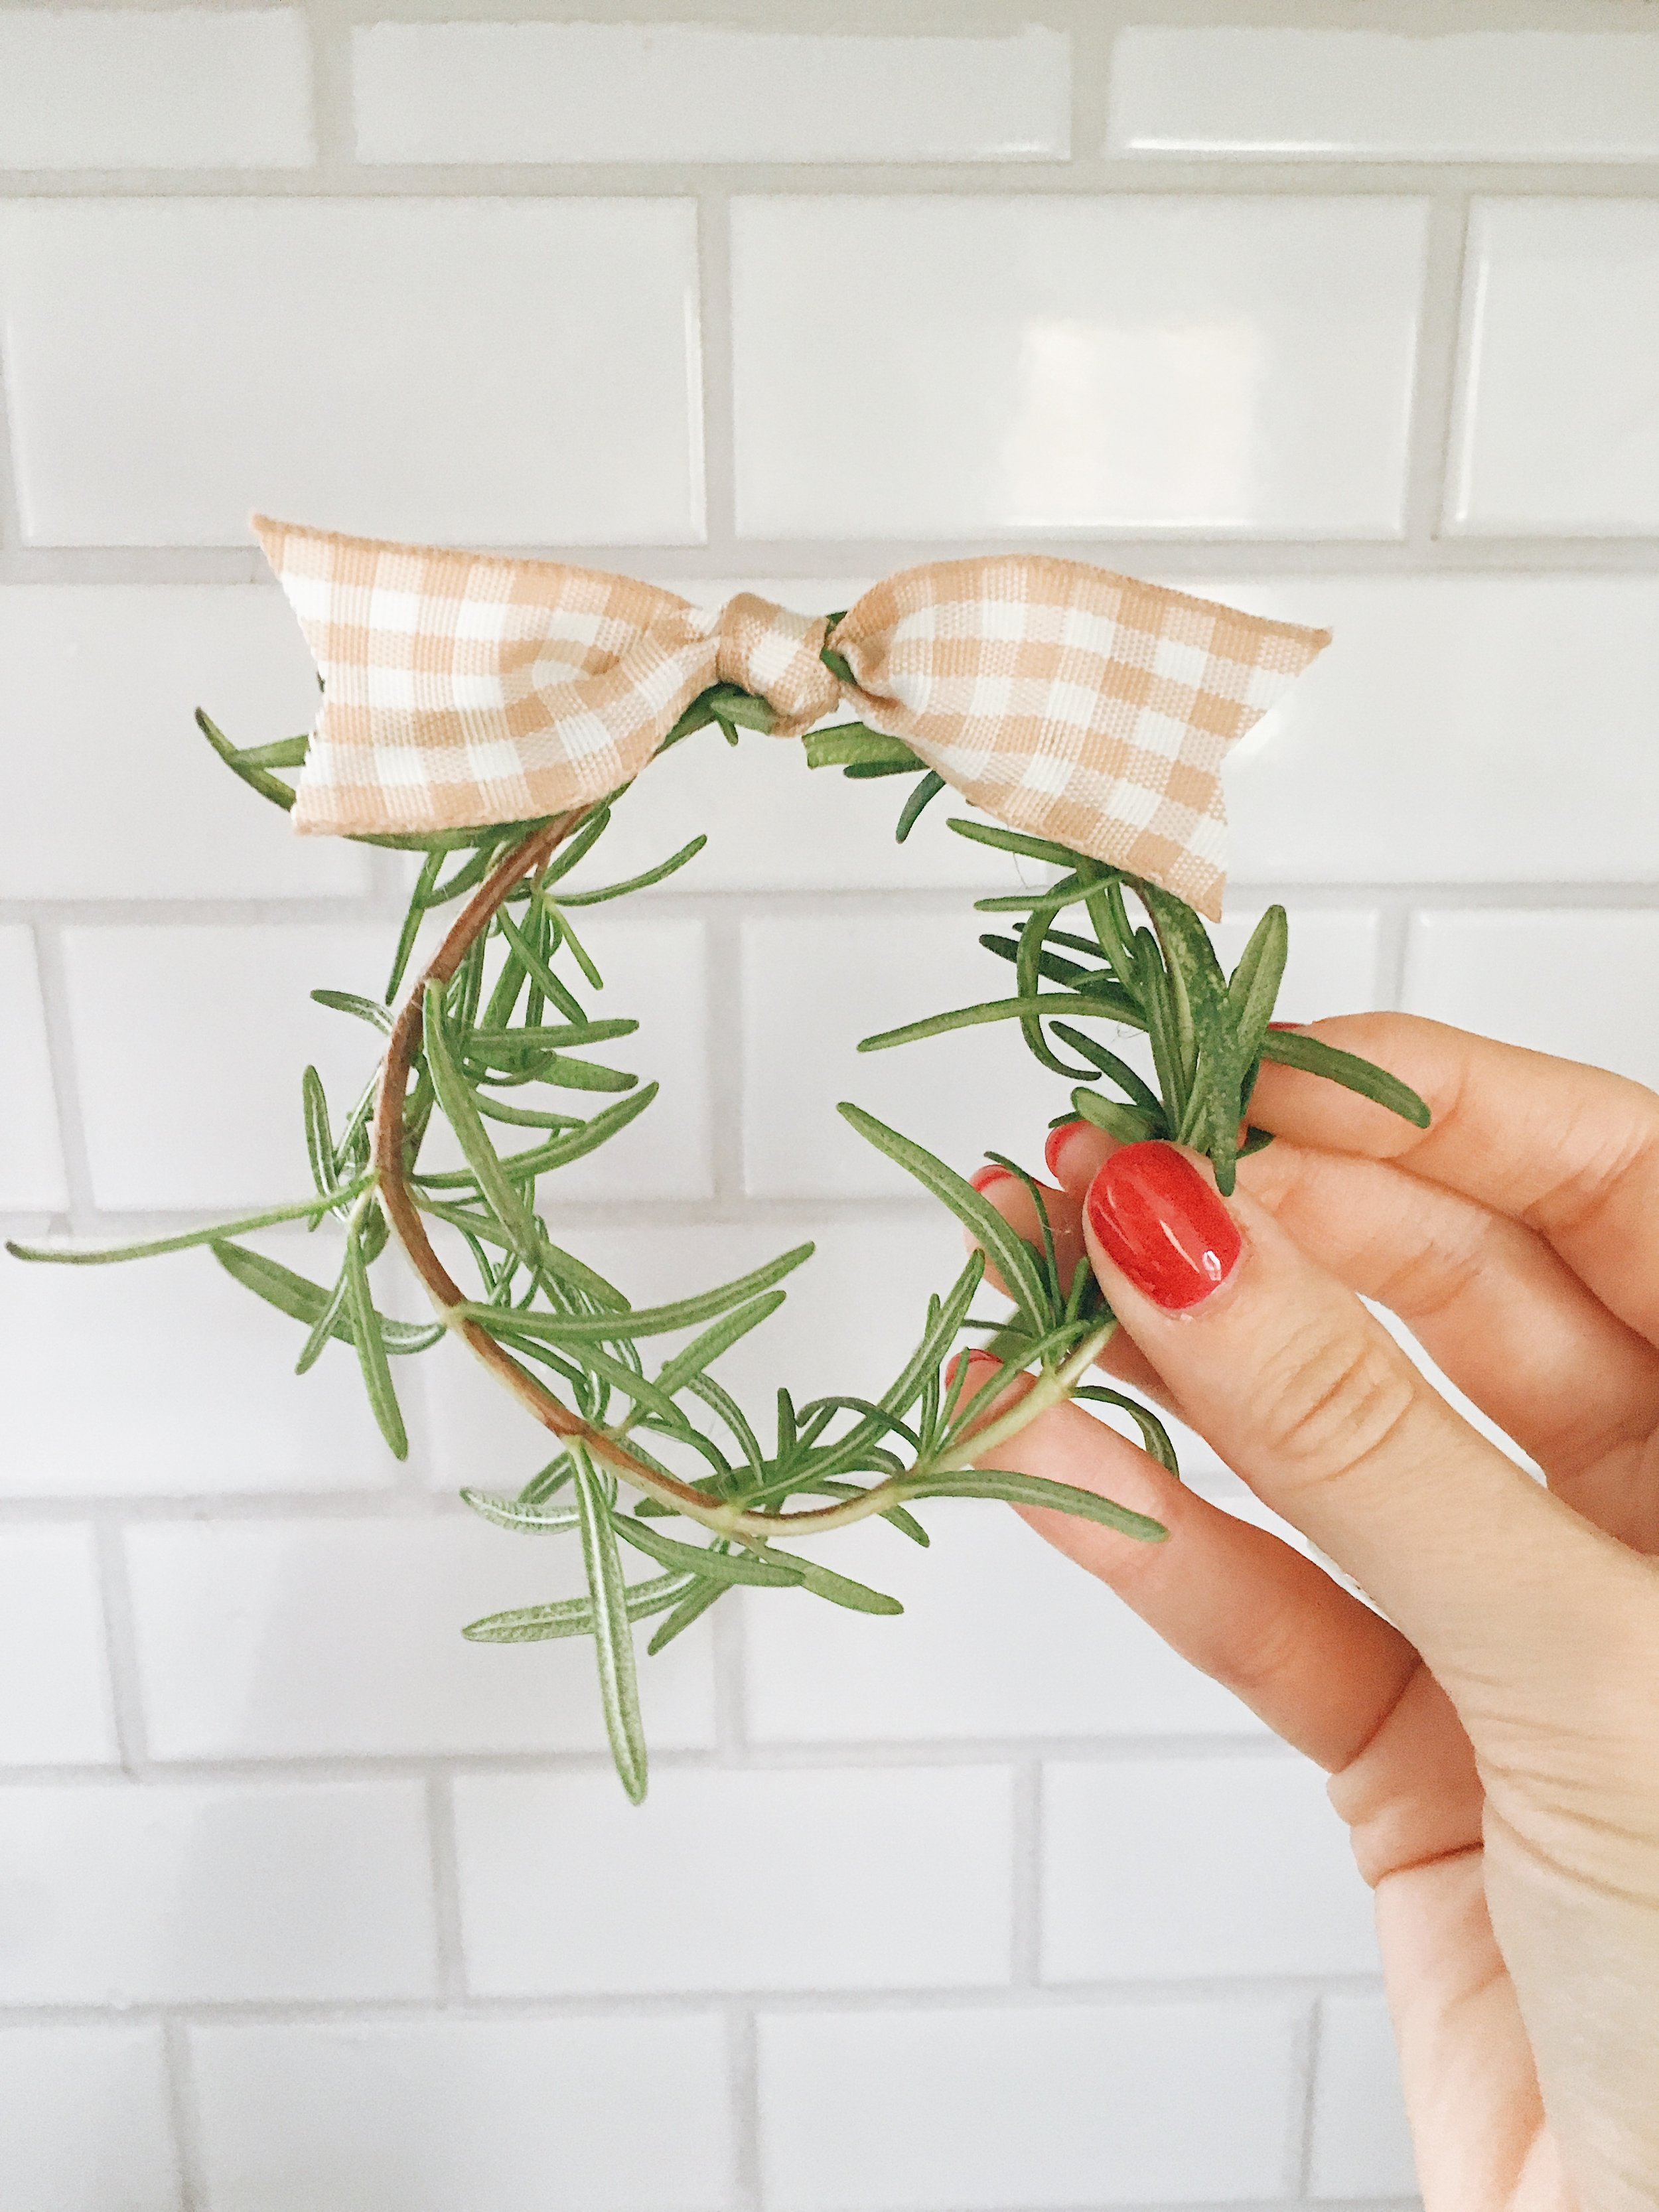 step: 3 - Use twine to tie together rosemary in a circular form. Tie ribbon in one knot over twine (to hide it). Cut edges to your liking.